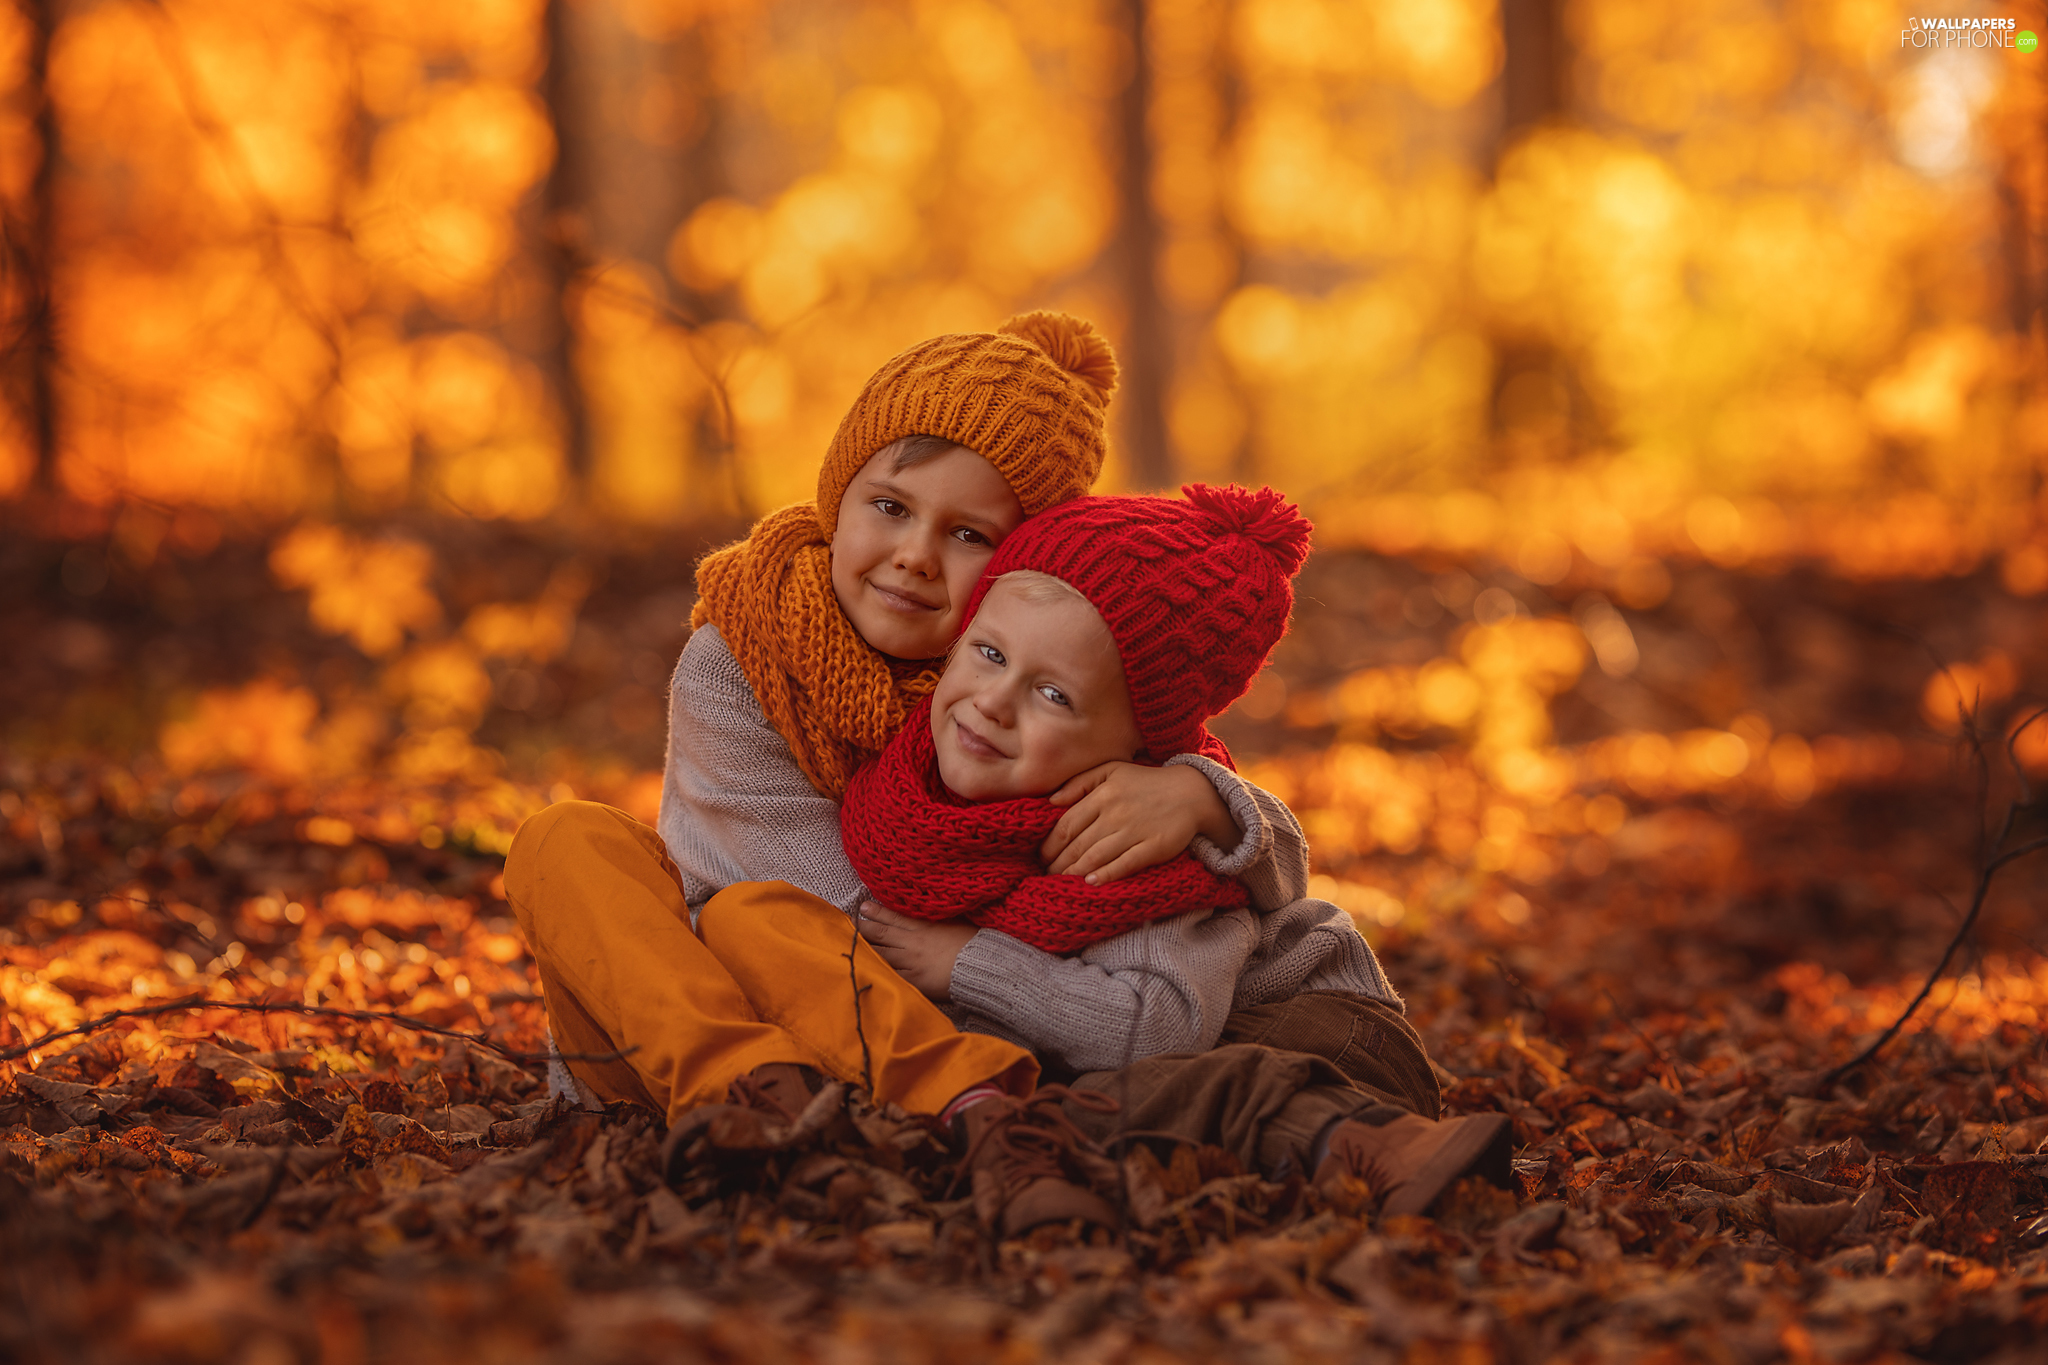 Leaf, autumn, caps, Scarves, Kids